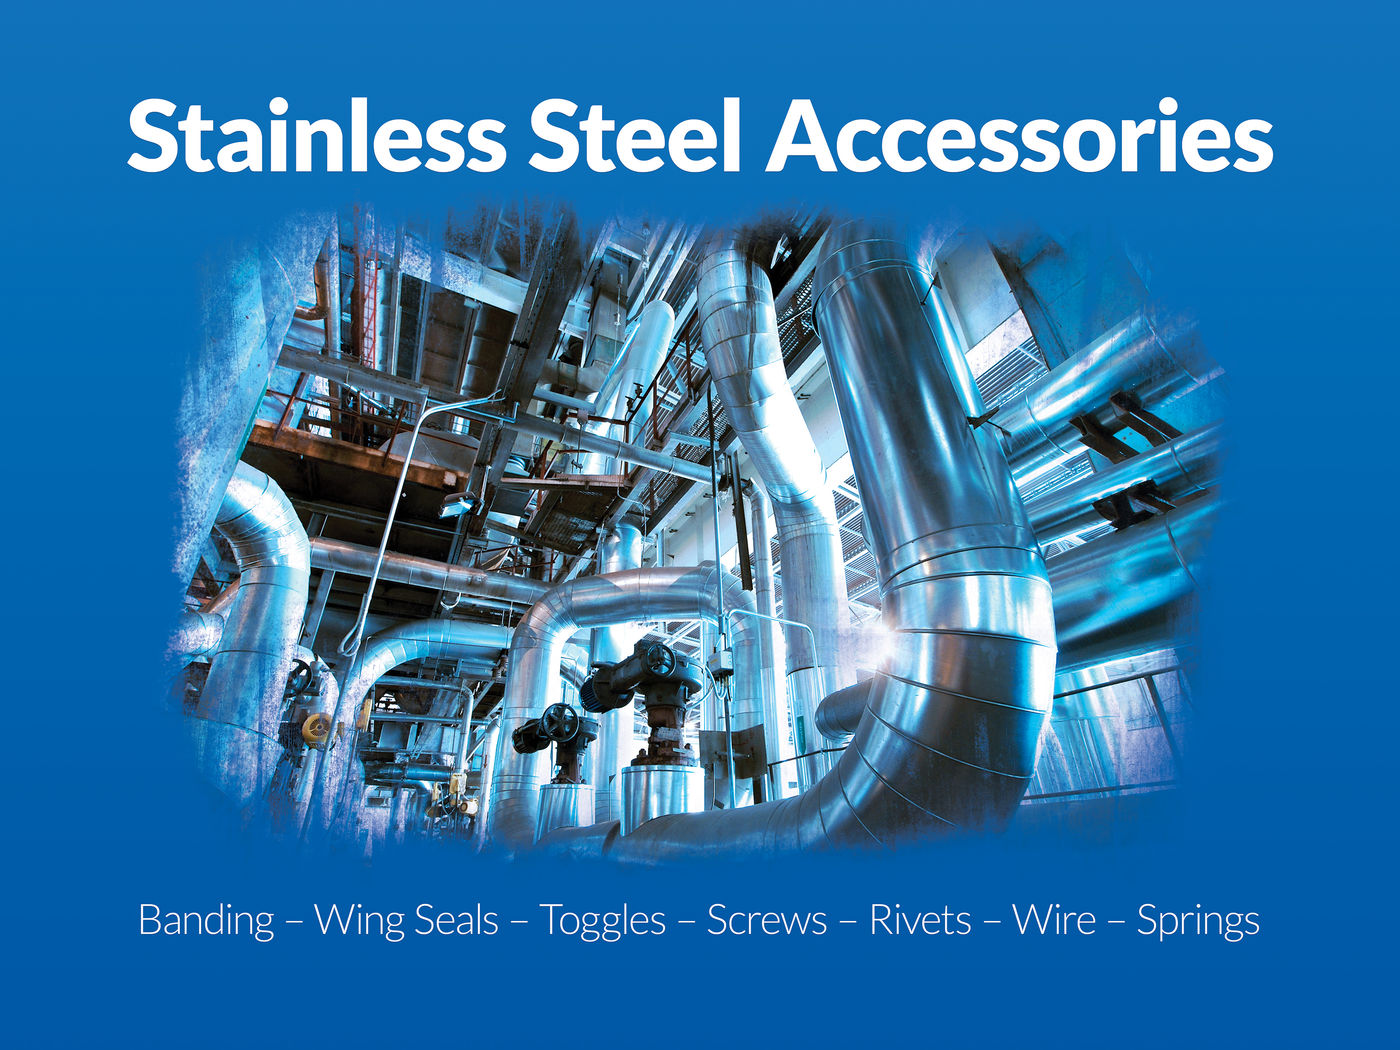 BS Stainless 2012 Accessories poster – Gastech 2012